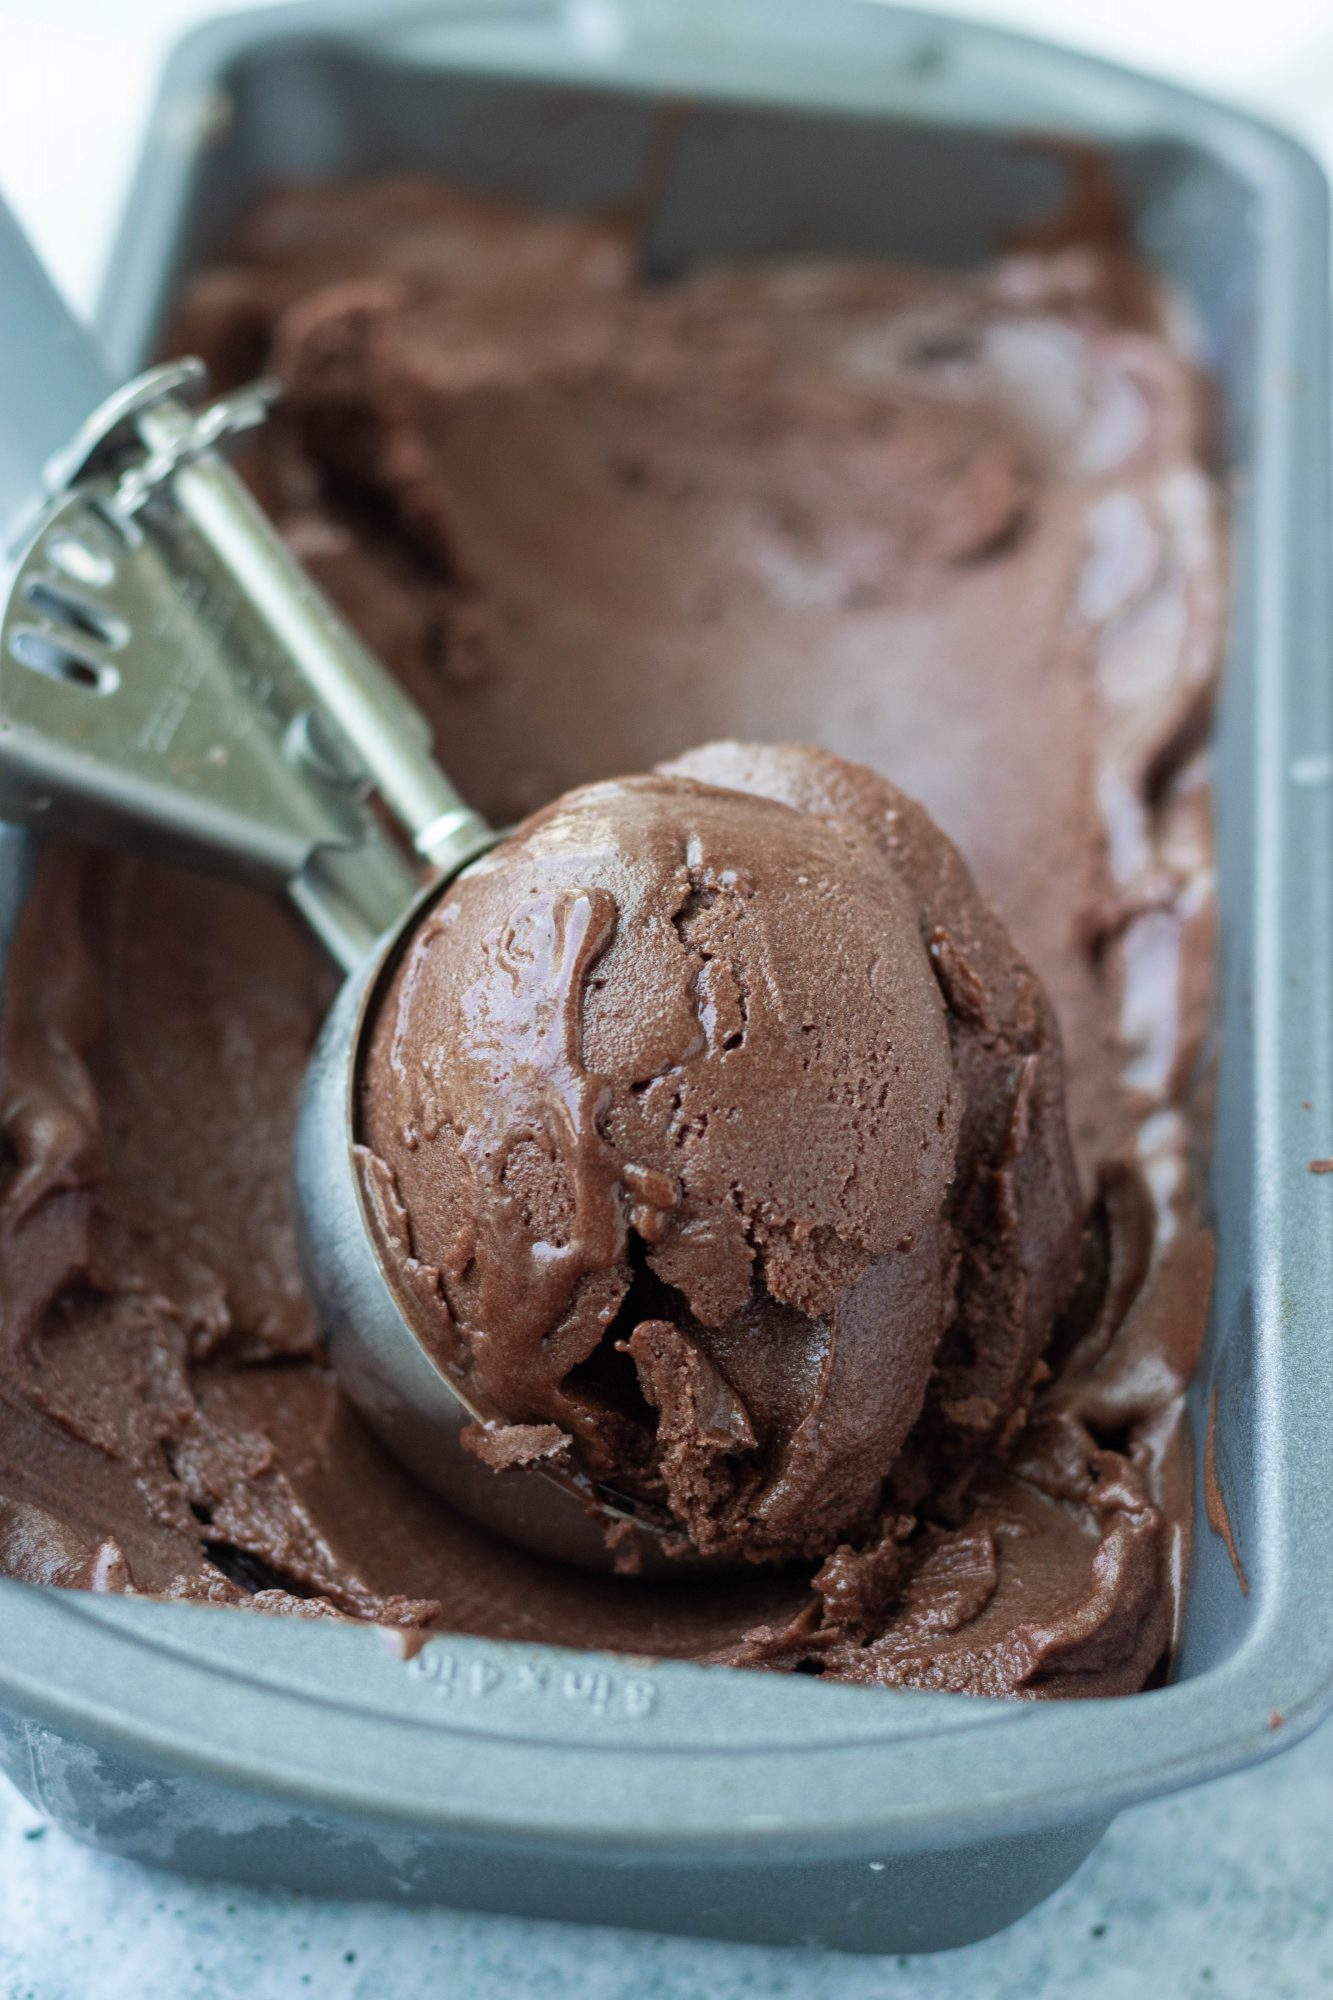 Chocolate Banana Ice Cream Recipe